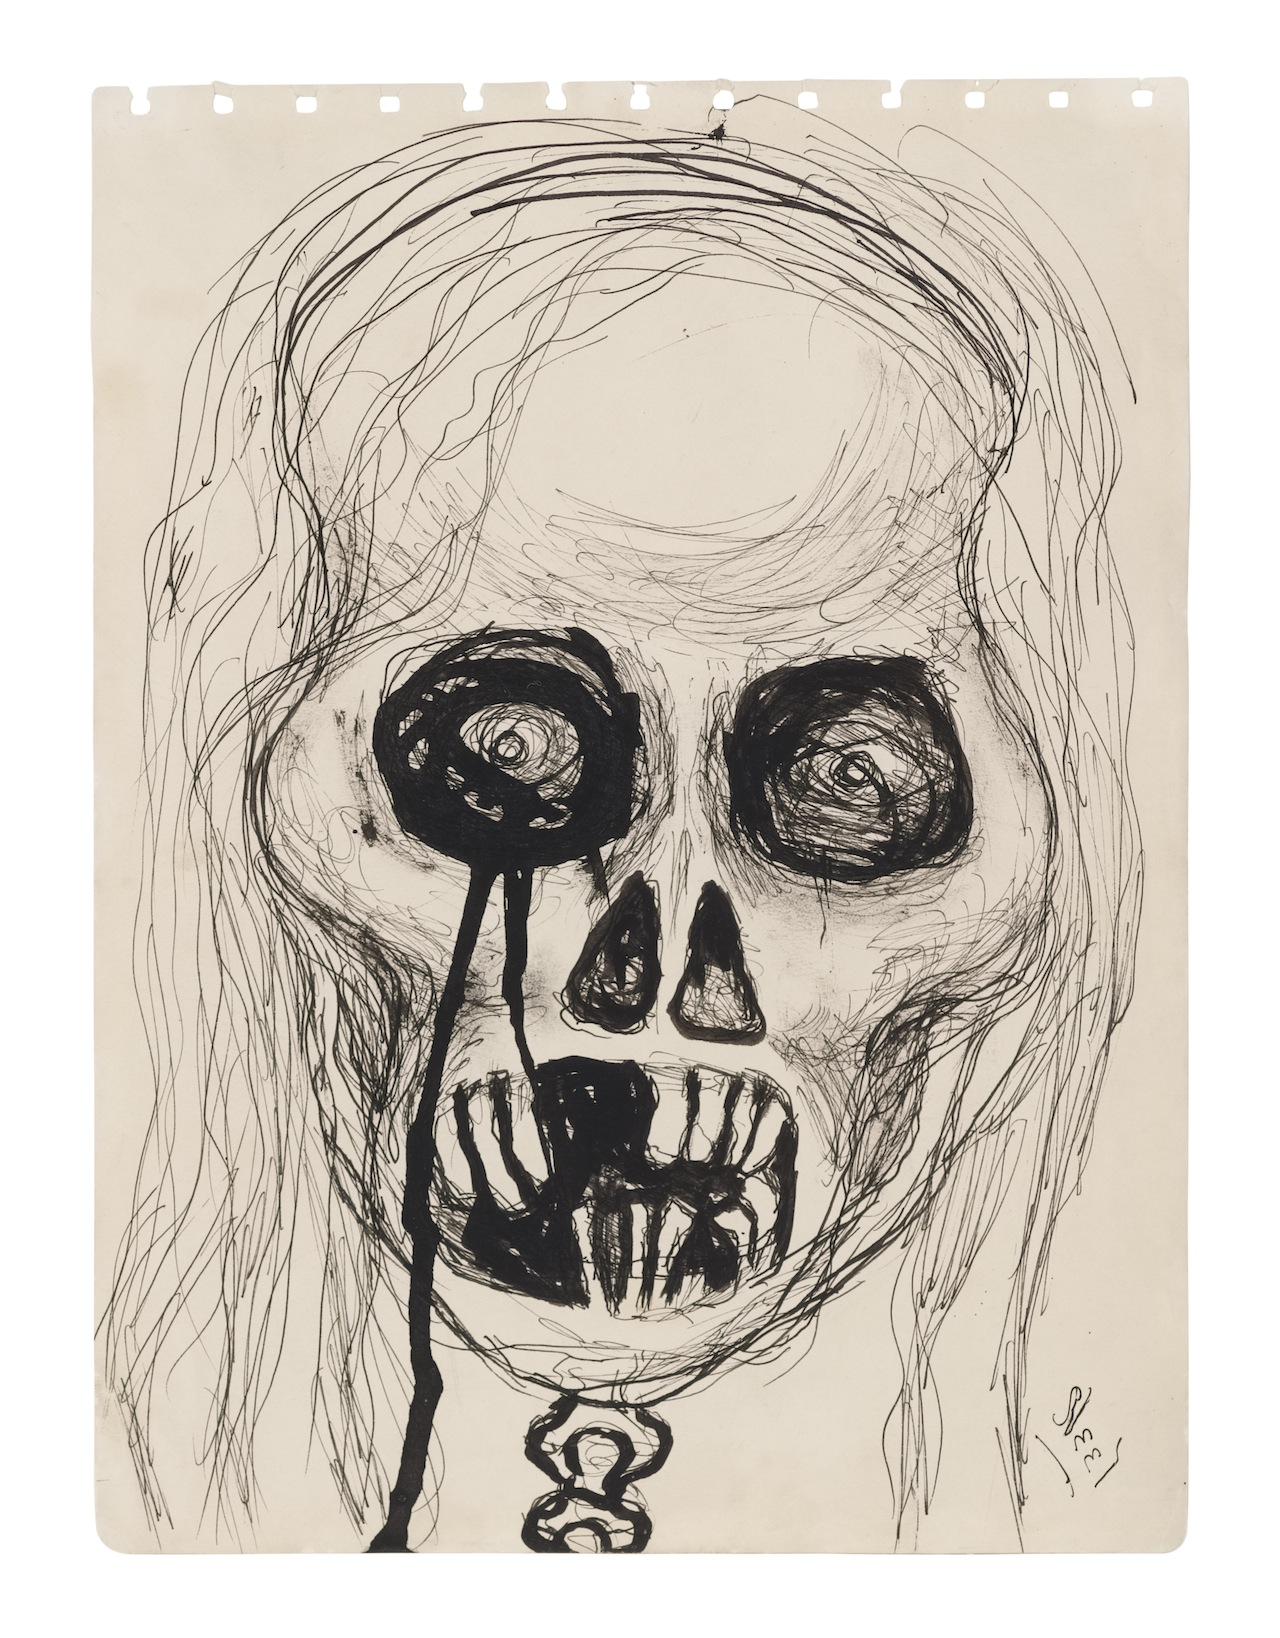 Alice Neel Self-Portrait Skull, 1958 Ink on paper 11 3/4 x 8 3/4 inches (29.8 x 22.2 cm) © The Estate of Alice Neel Courtesy David Zwirner, New York/London (click to enlarge)